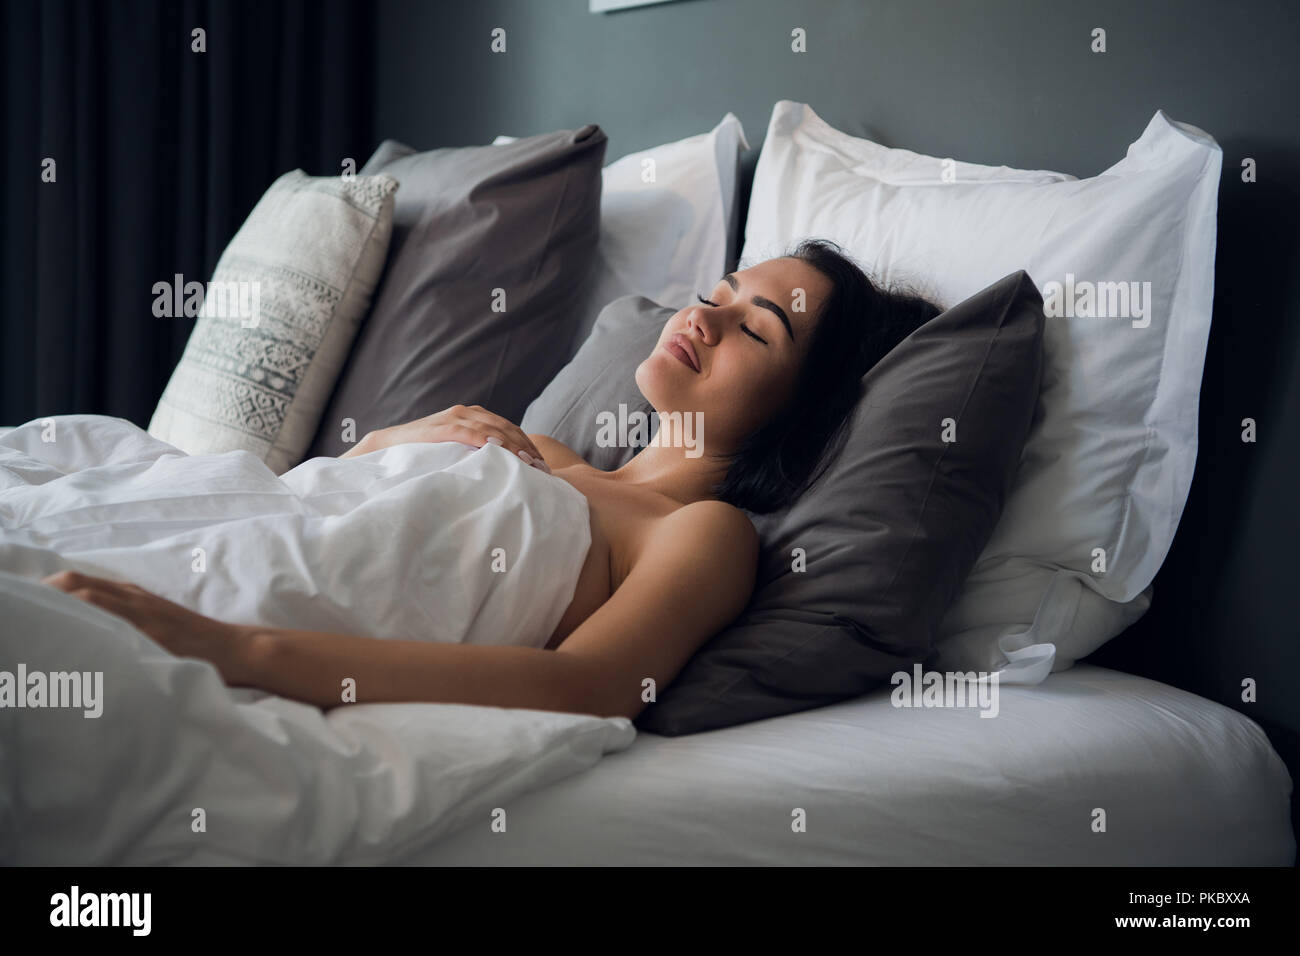 night, rest, comfort and people concept - young woman sleeping in bed at home - Stock Image